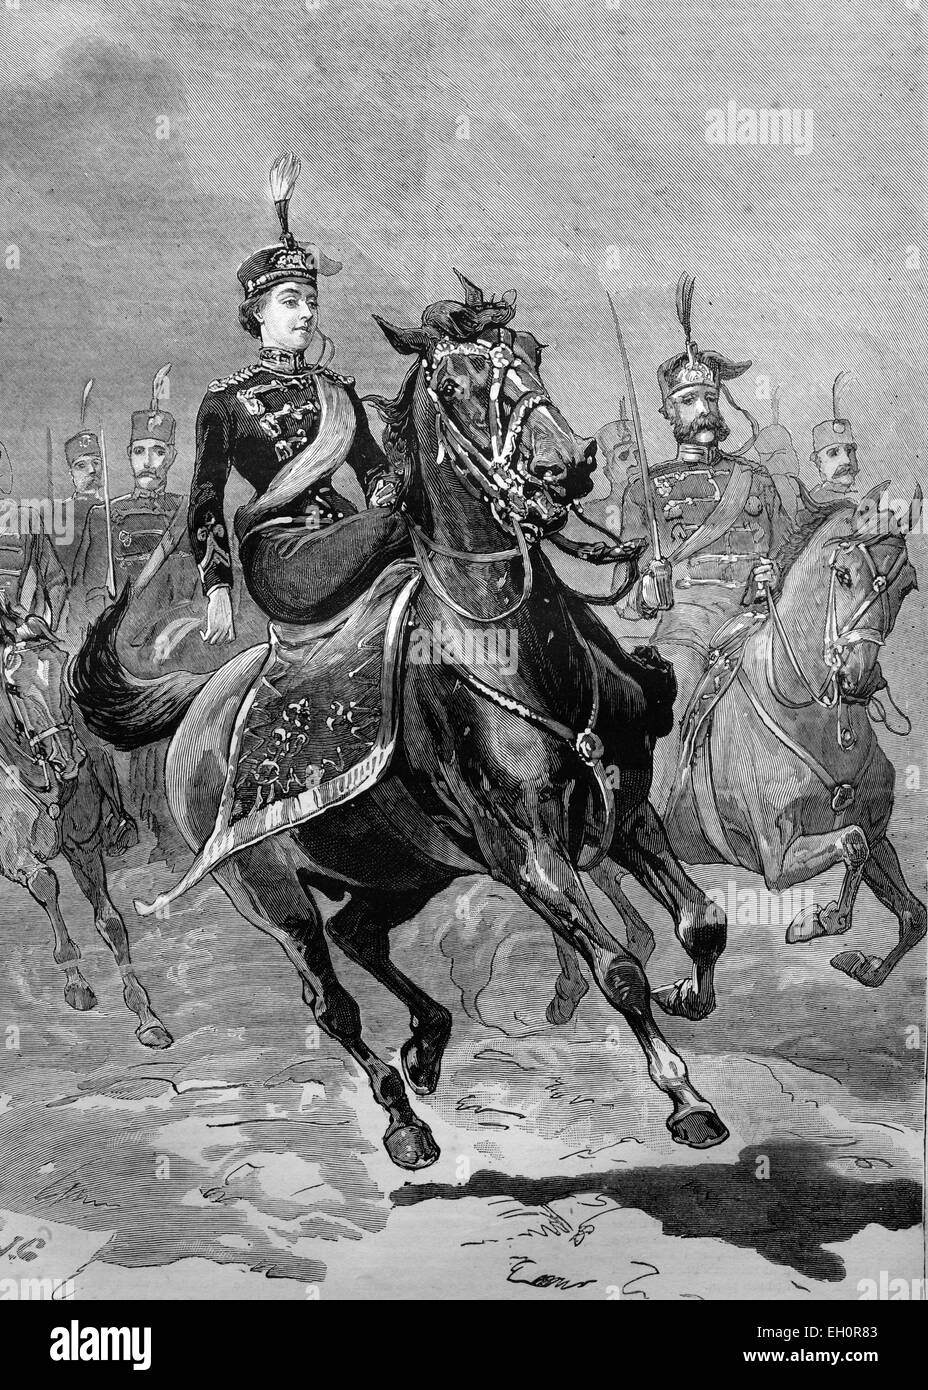 The Imperial Princess at the head of her regiment of Hussars, Germany, historical illustration, 1884 - Stock Image